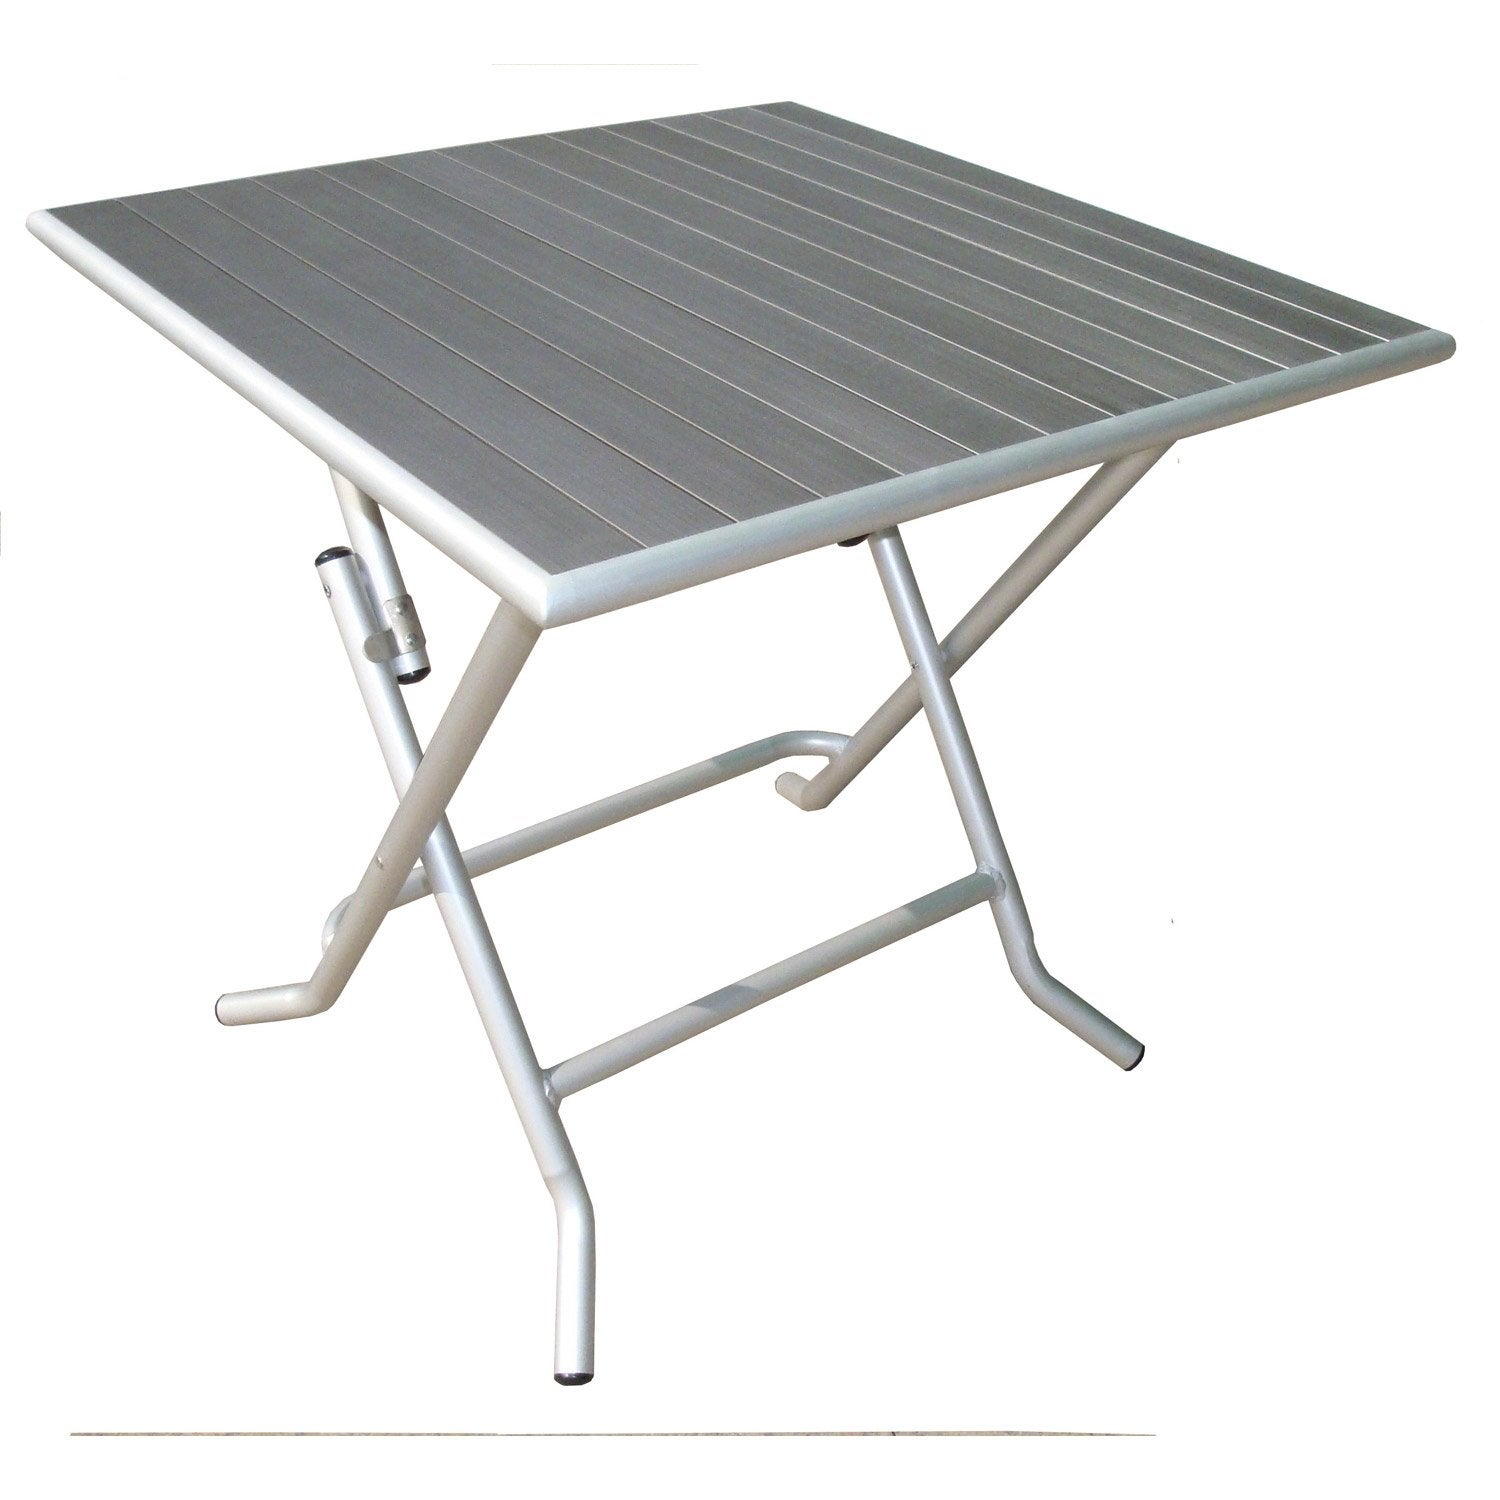 Table basse exterieur leroy merlin - Table de jardin carree extensible ...